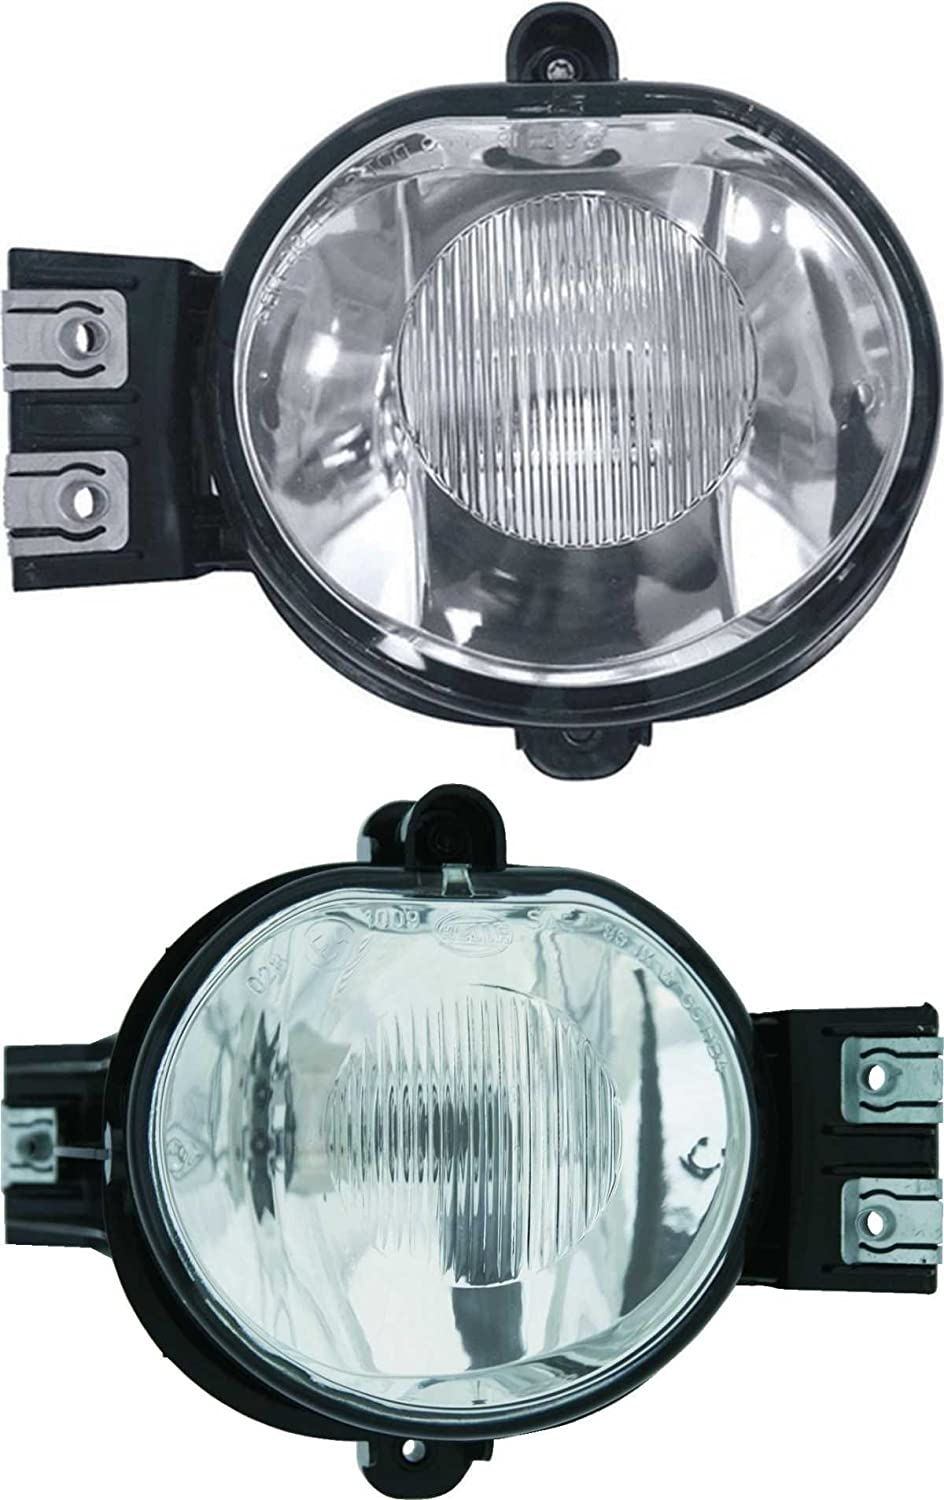 Prime Choice Auto Parts KAPDG40052A1PR Set of 2 Right and Left Fog Lights